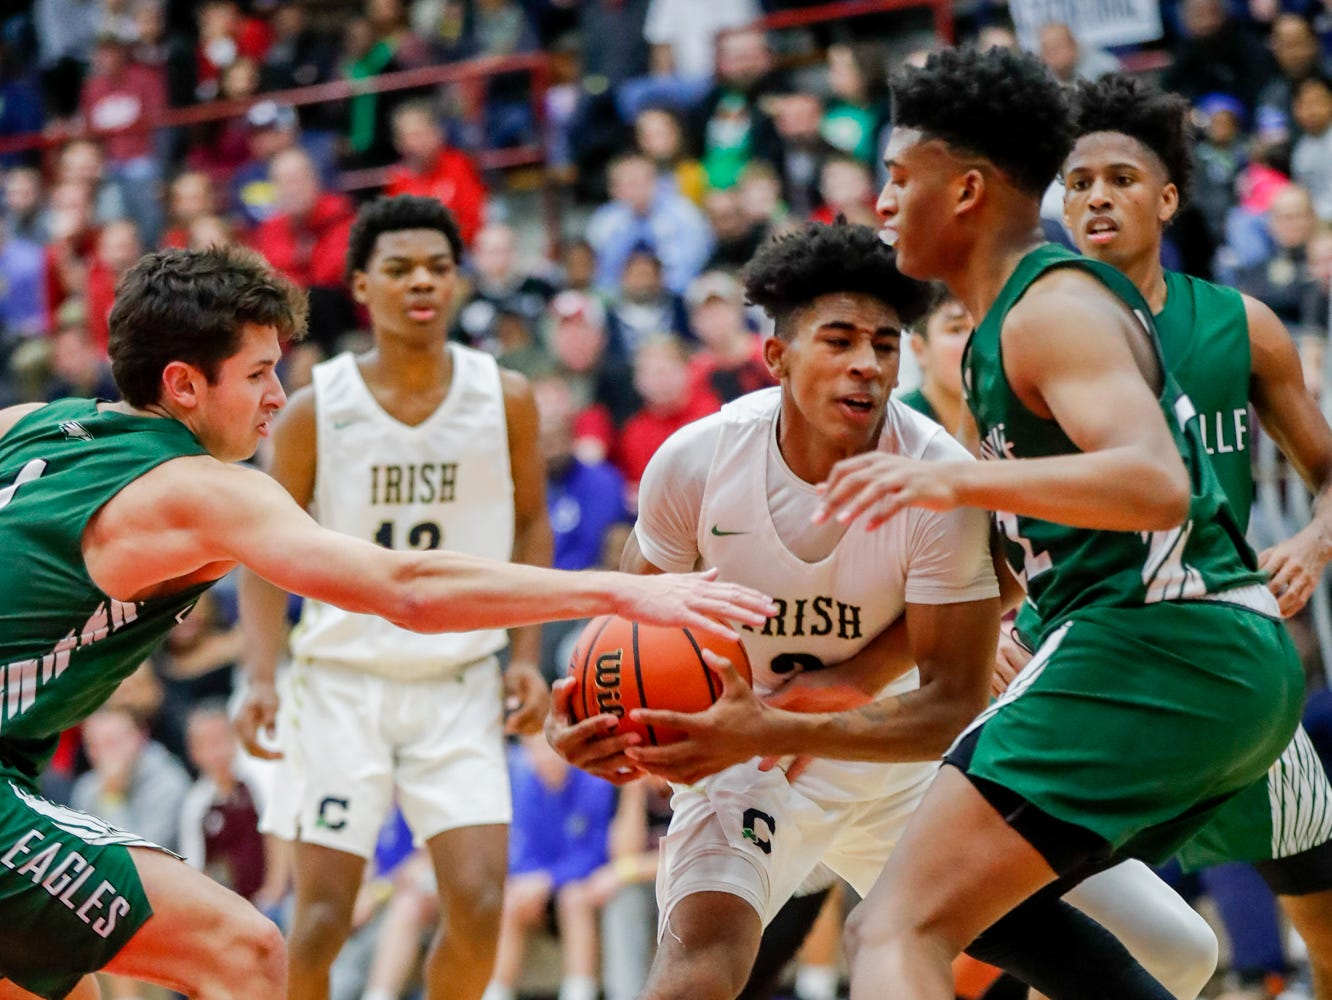 during a Tip Off Classic game between Cathedral High School and Zionsville Community High School, held at the Southport Fieldhouse, on Saturday, Dec. 8, 2018.